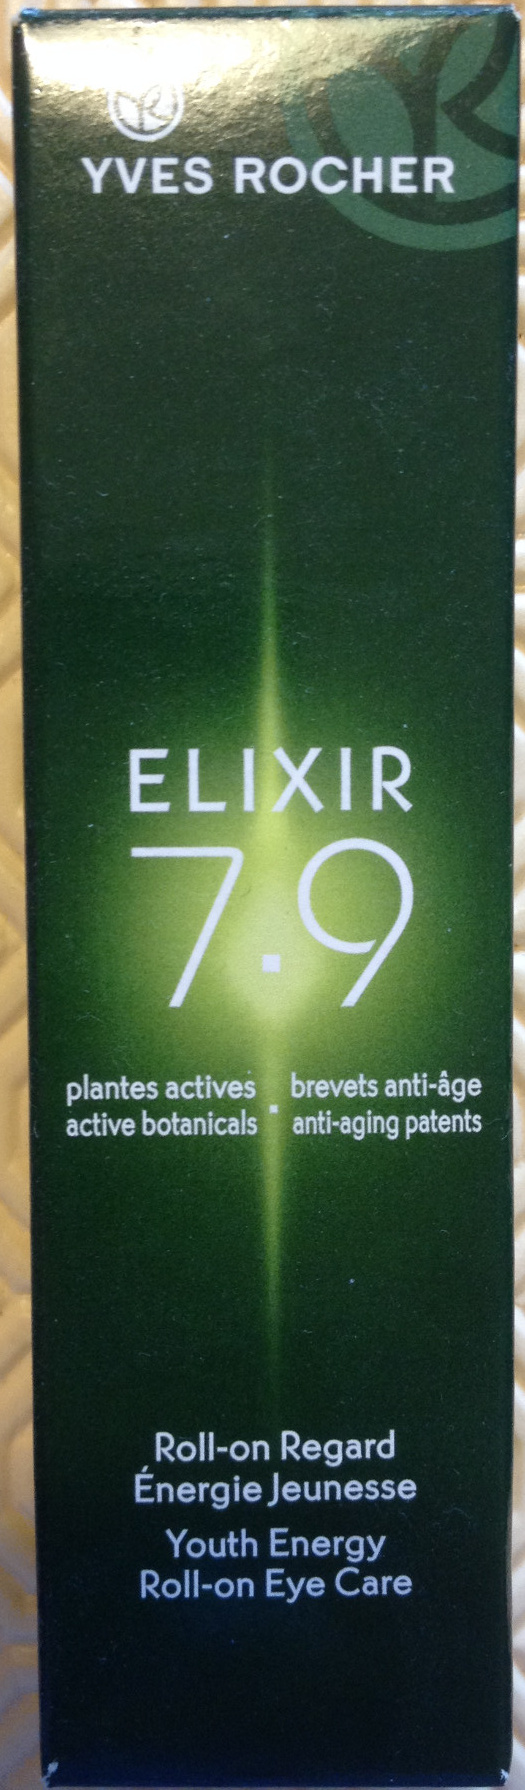 Elixir 7.9 roll-on Regard - Product - fr